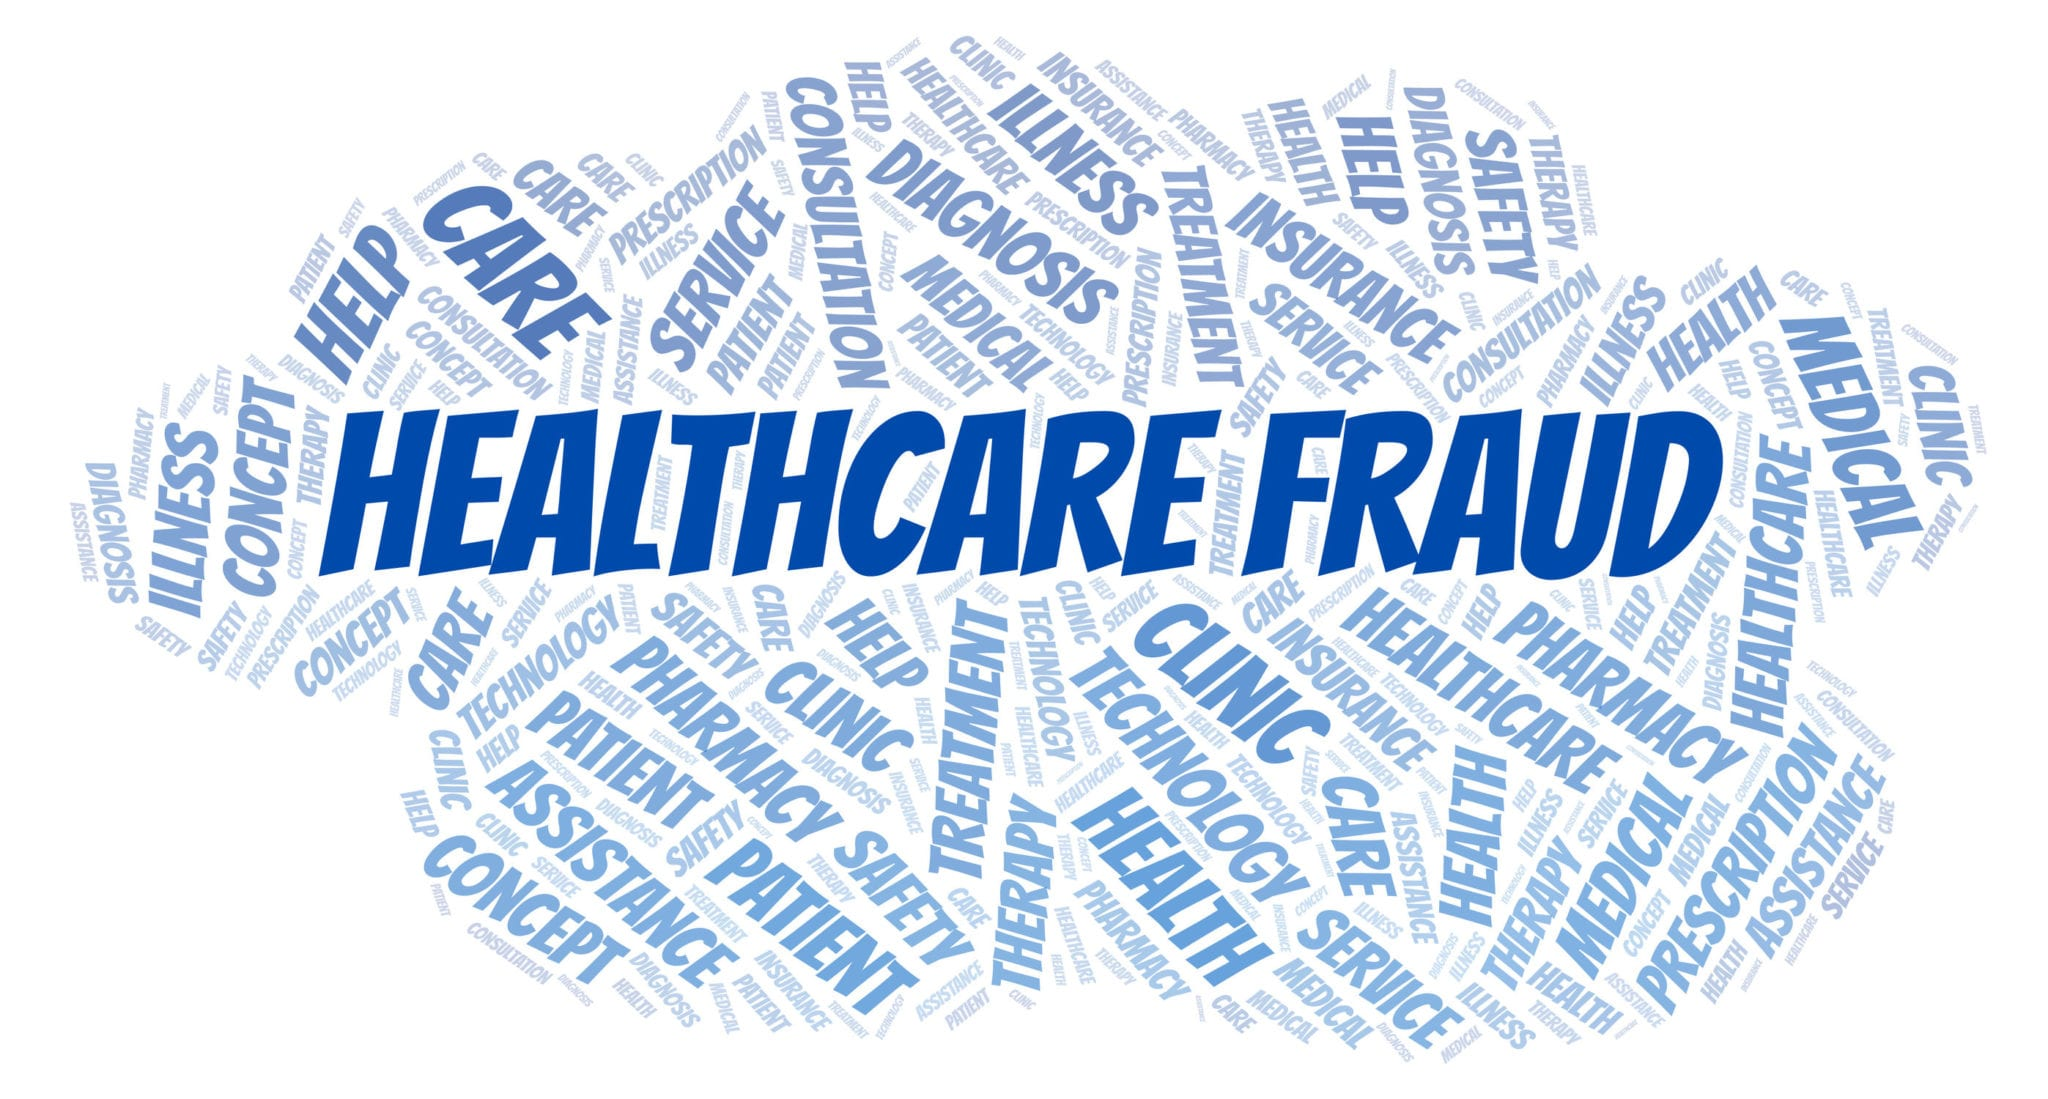 What Texans Should Know About Healthcare Fraud